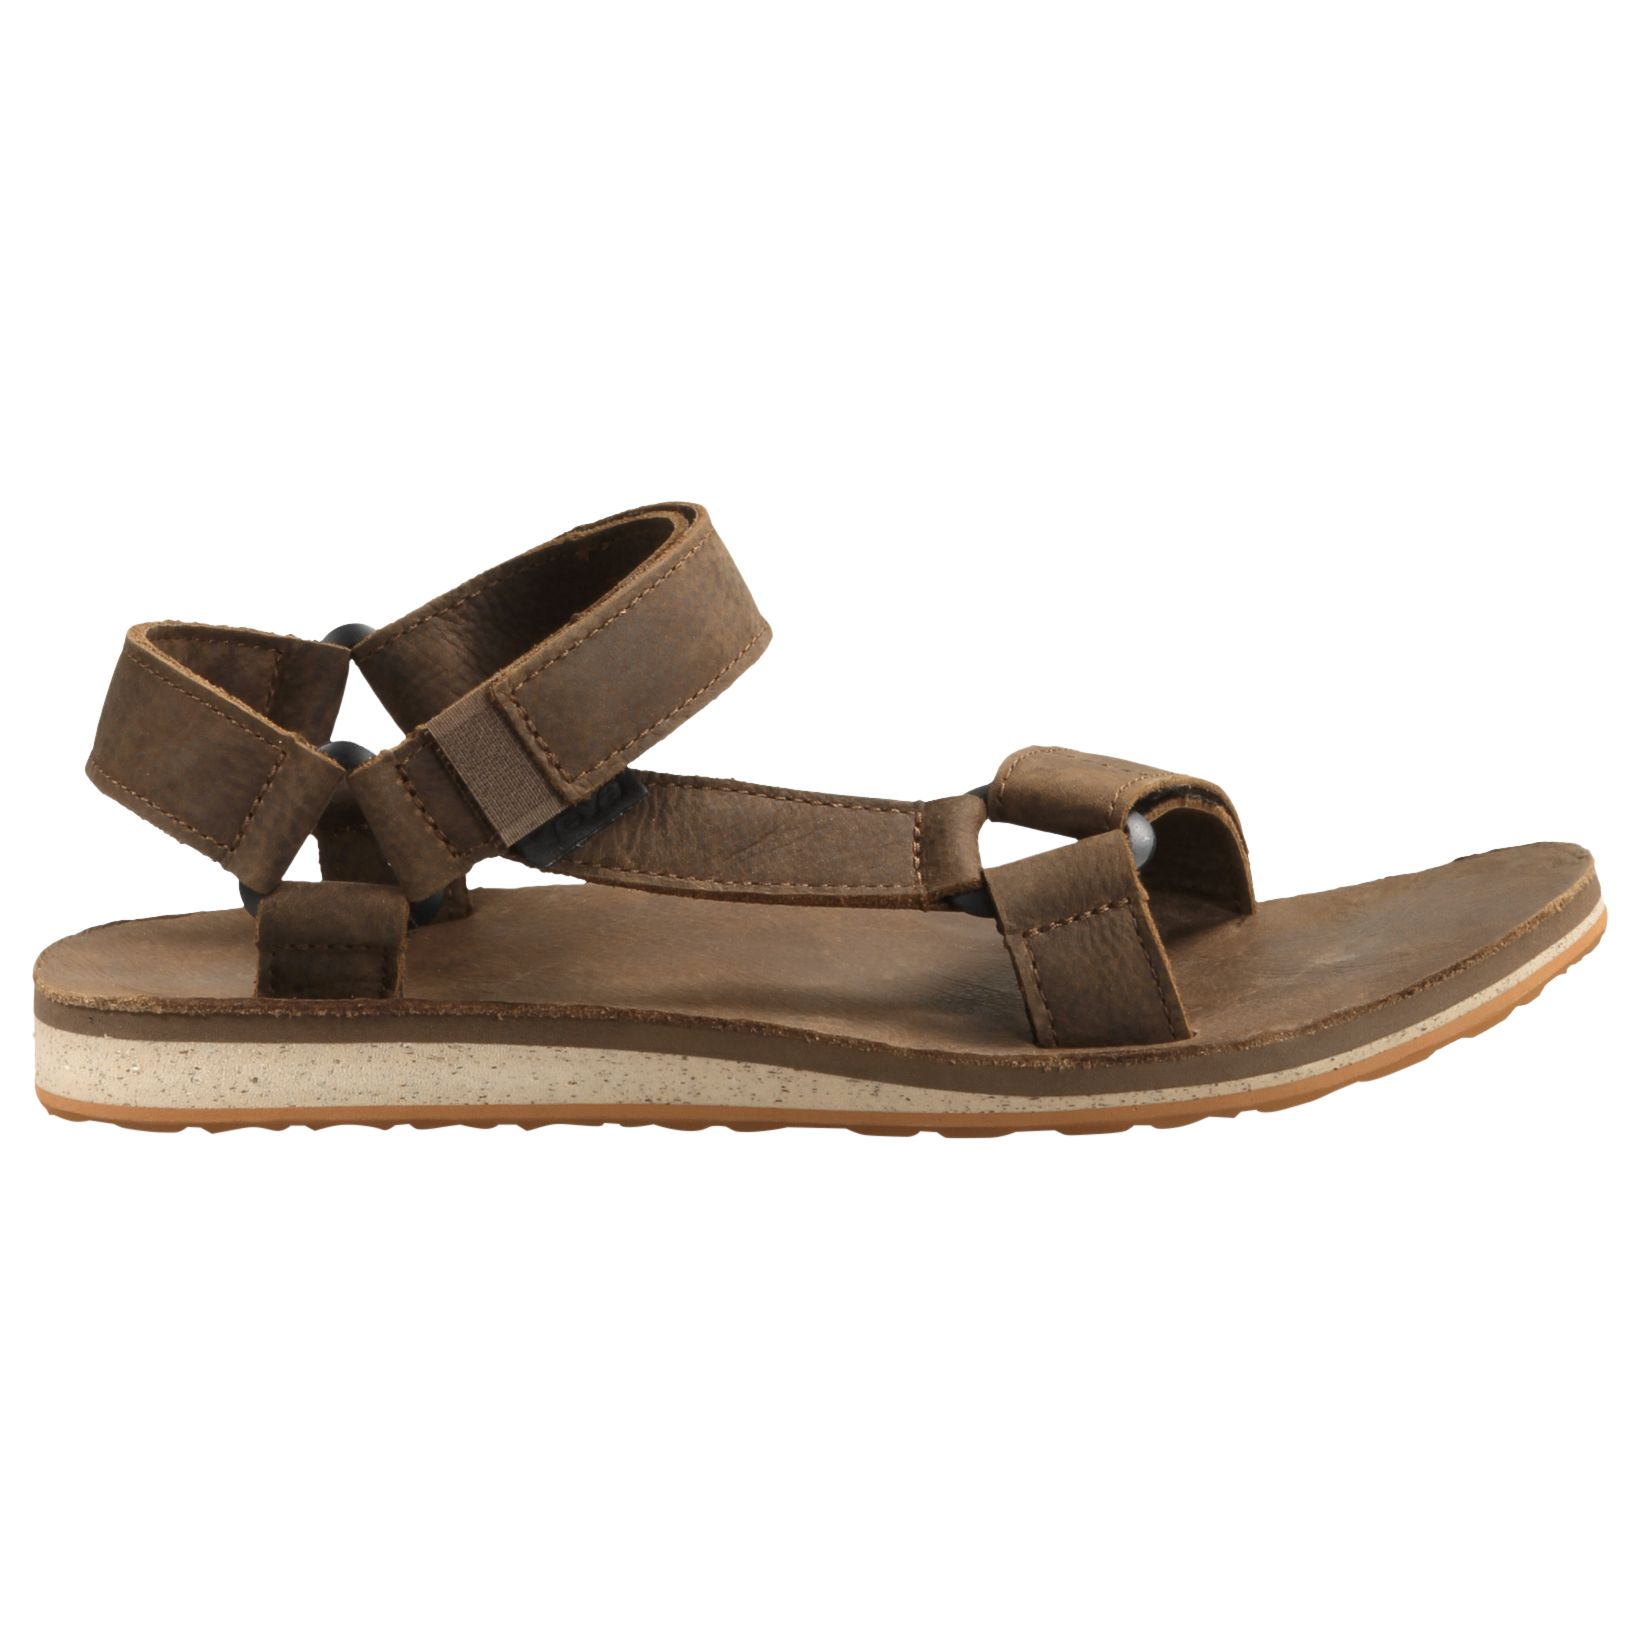 a068971eb Teva Original Universal Premium Leather Men s Sandals